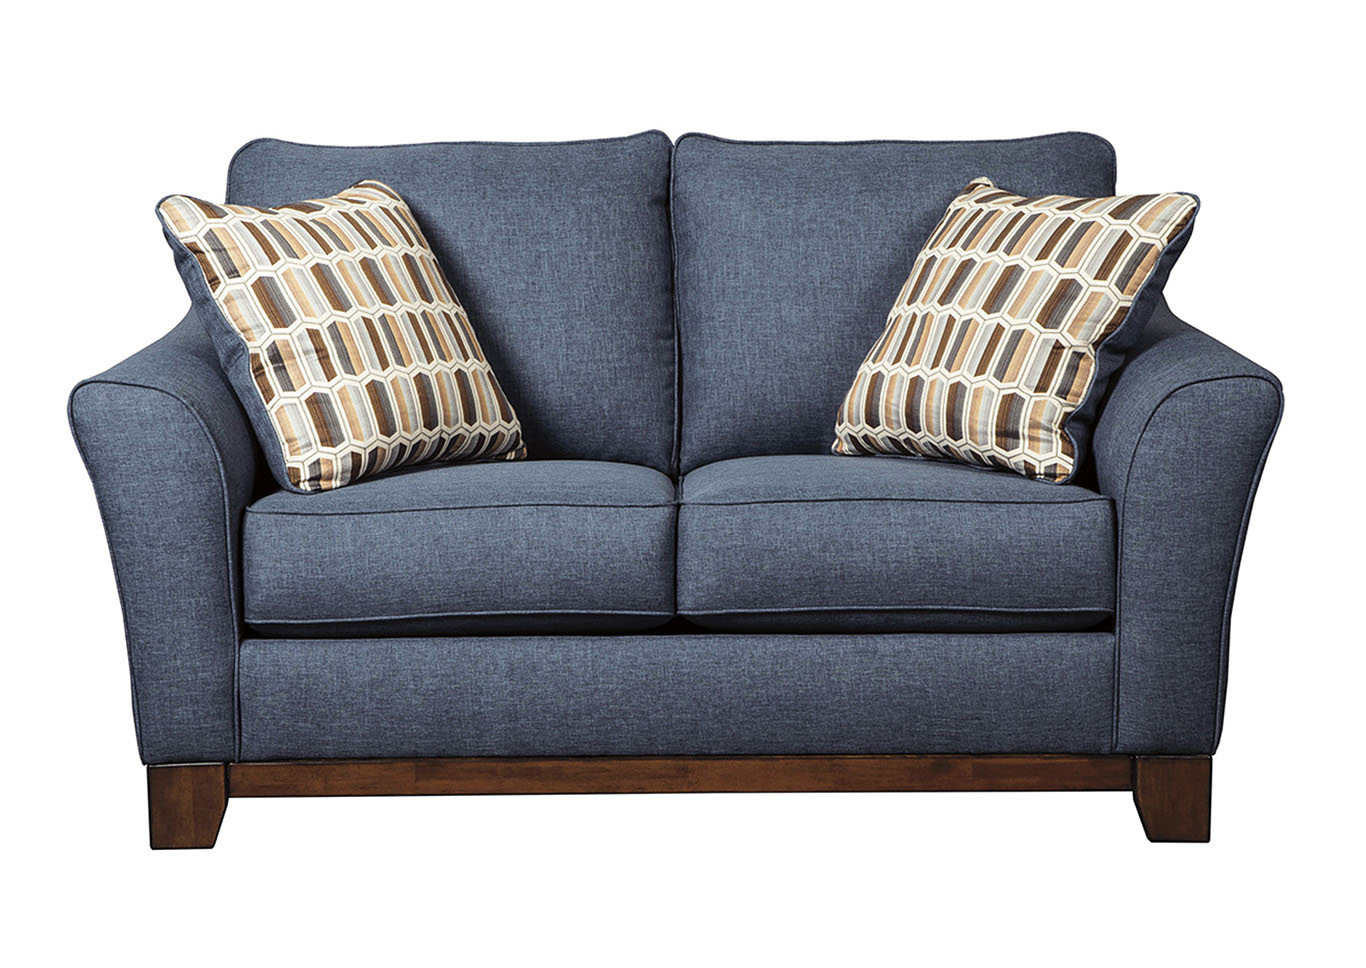 Furniture liquidators home center janley denim loveseat Denim couch and loveseat